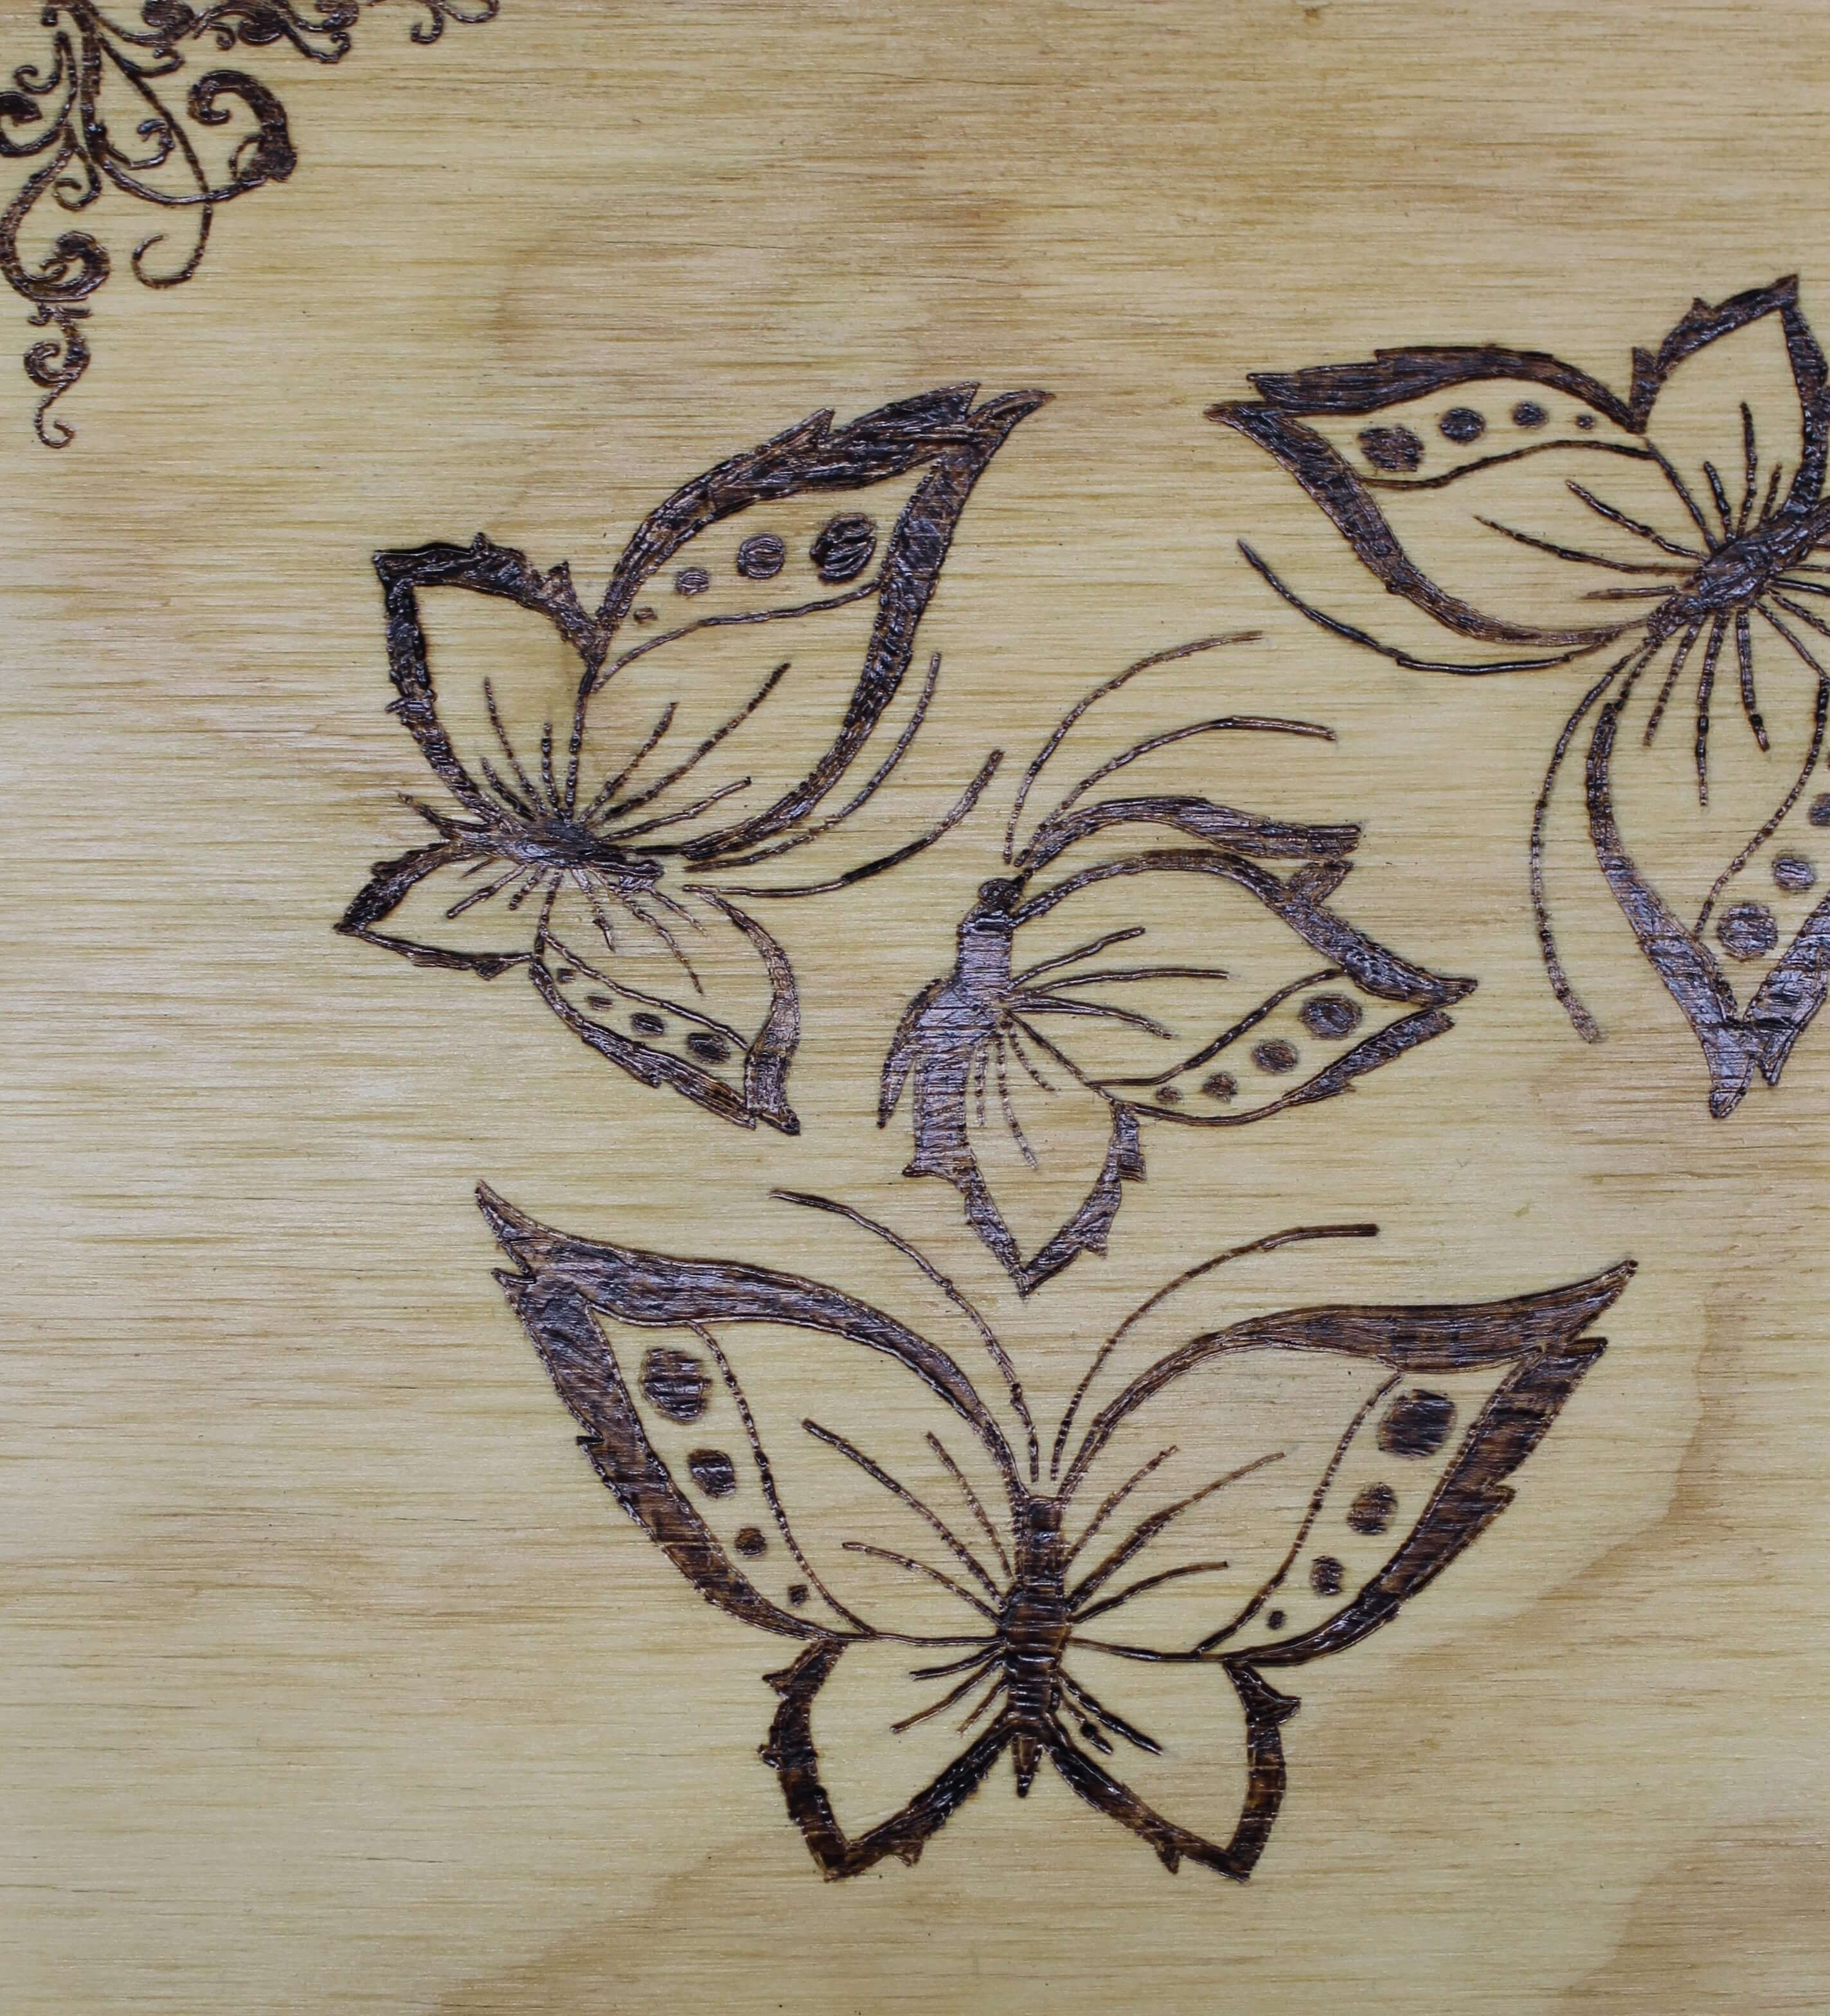 20 Free Printable Wood Burning Patterns For Beginners - Free Printable Wood Burning Patterns For Beginners